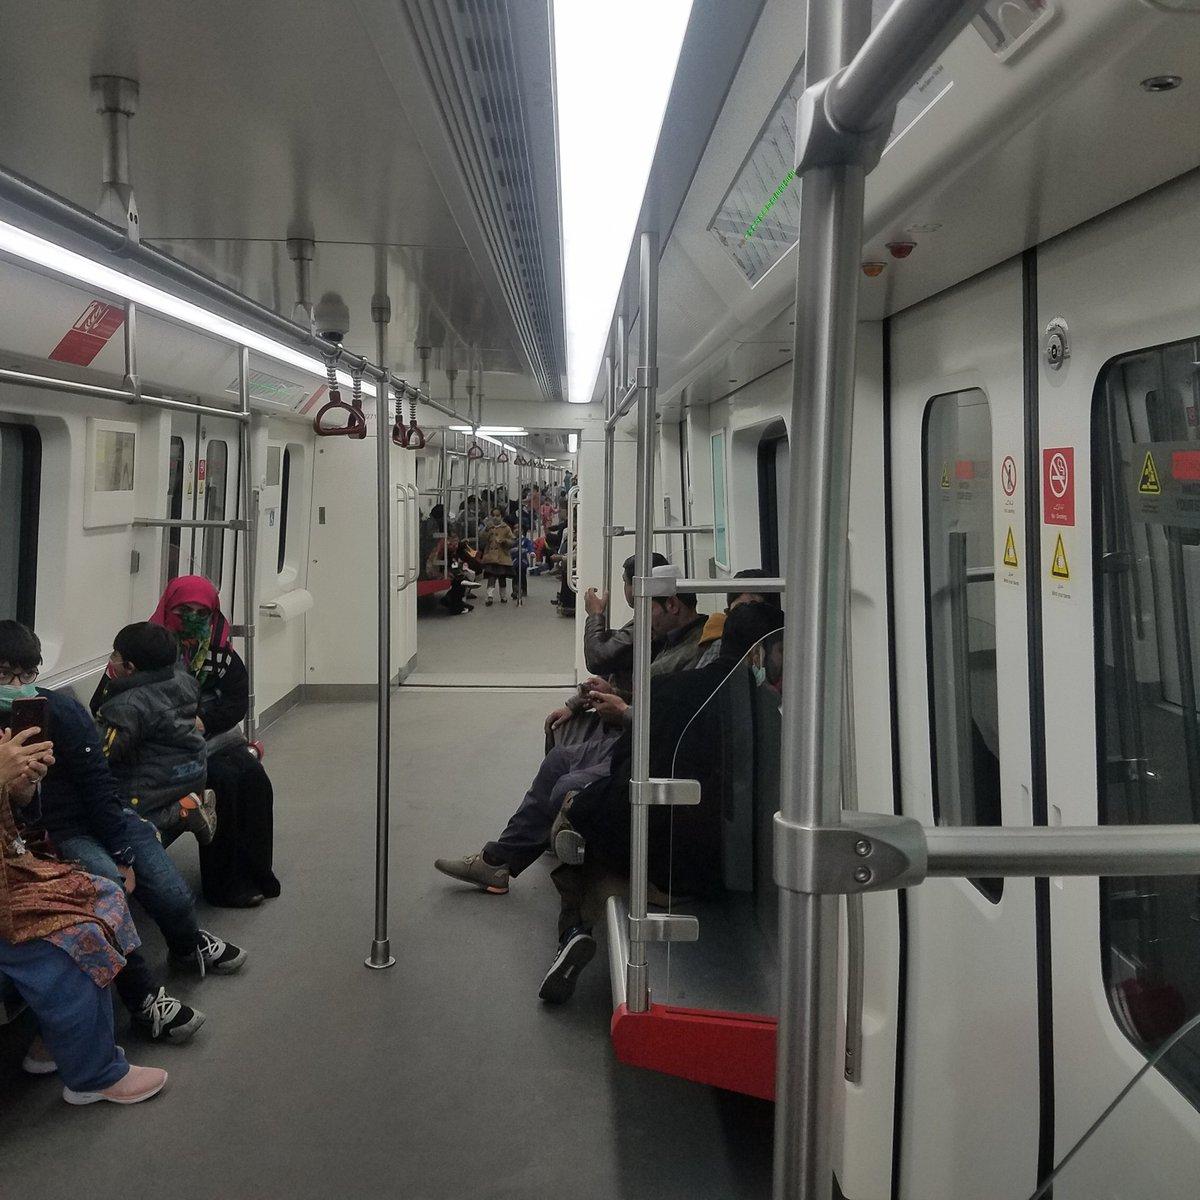 #shukriya Mian sb for providing a decent transport in Lahore. Today i travelled on this train in Lahore. Really impressive  I went to shanghai in 2016 where i ist time travelled on metro train. Its a wonderful facility for people of punjab 👏👏 Haters can also travel on this💪